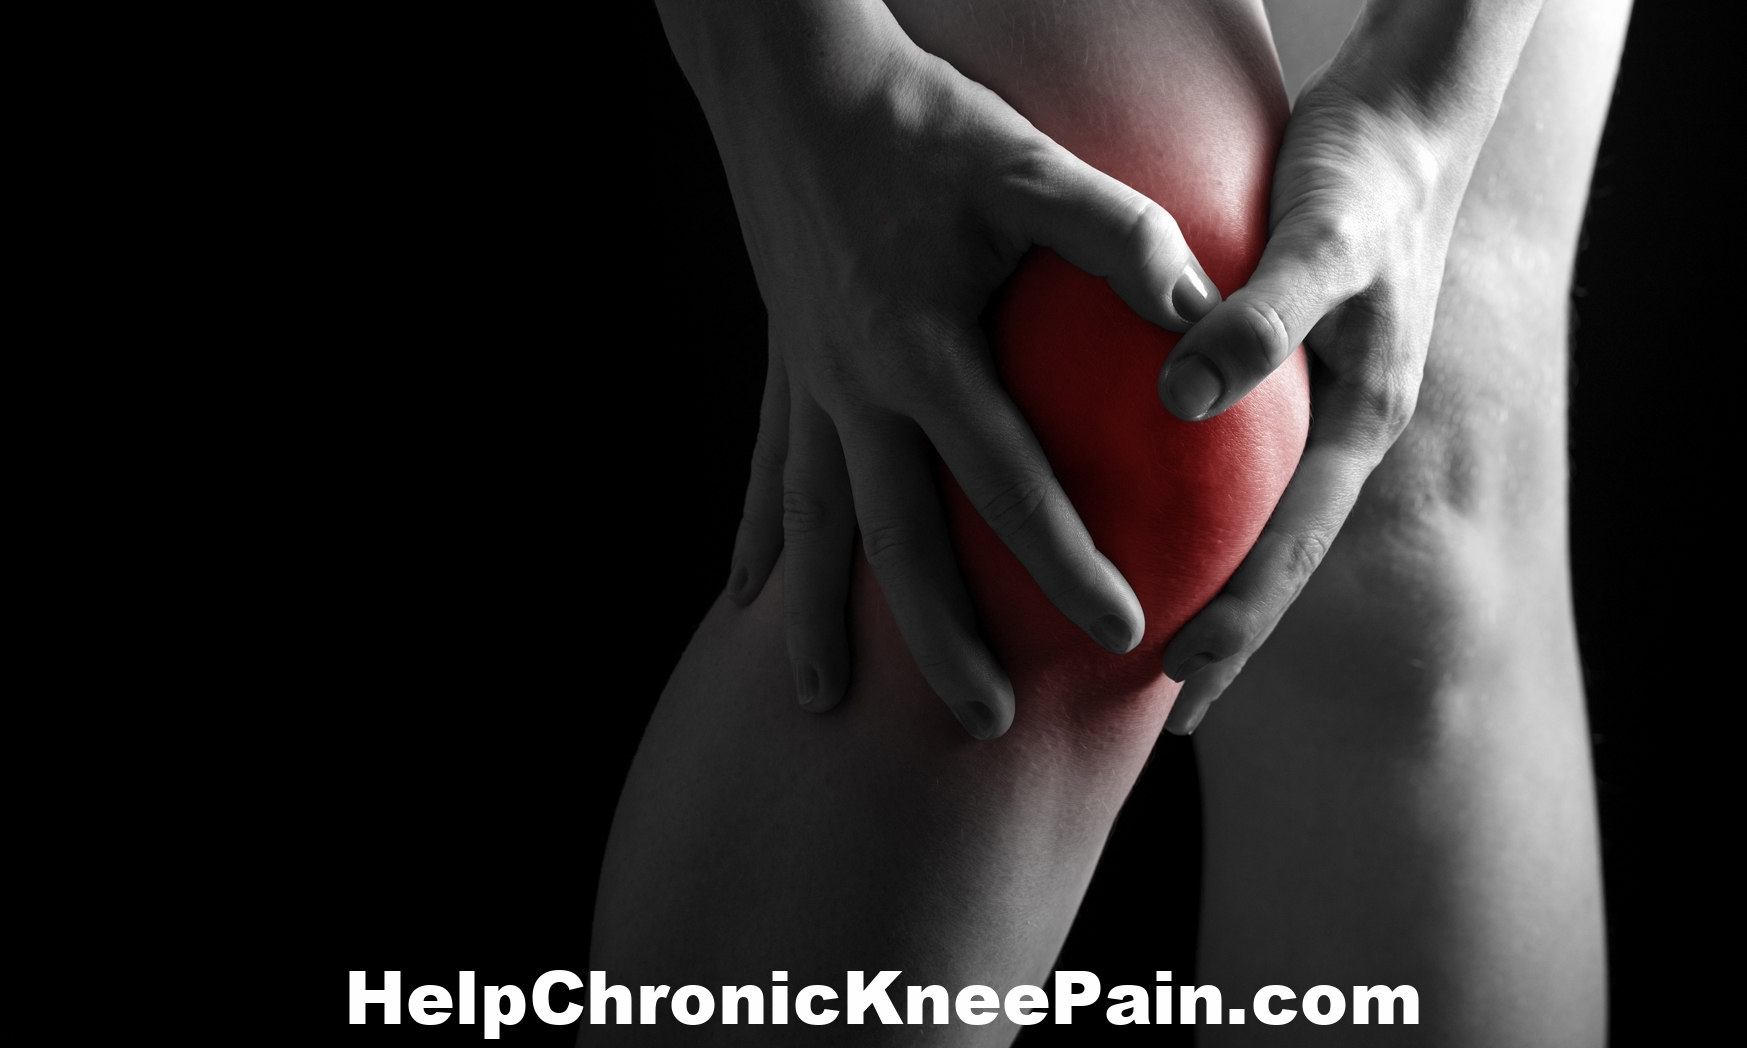 Black_Background_Knee_Pain-Small-Web